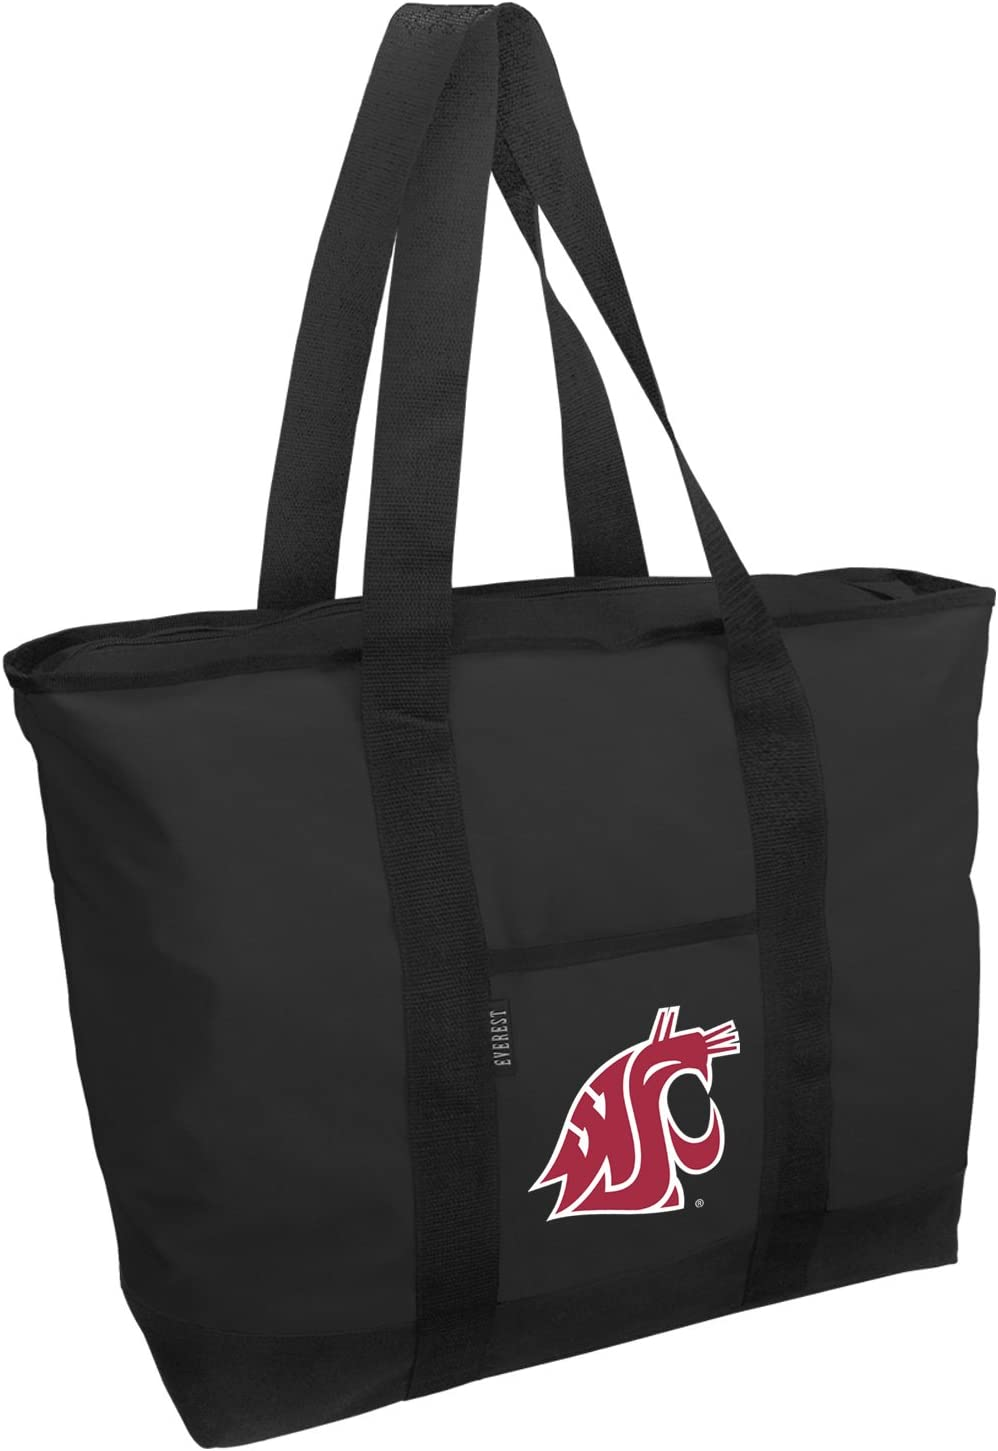 Broad Bay Washington State University S Outlet ☆ Ranking TOP11 Free Shipping Best Tote Bag